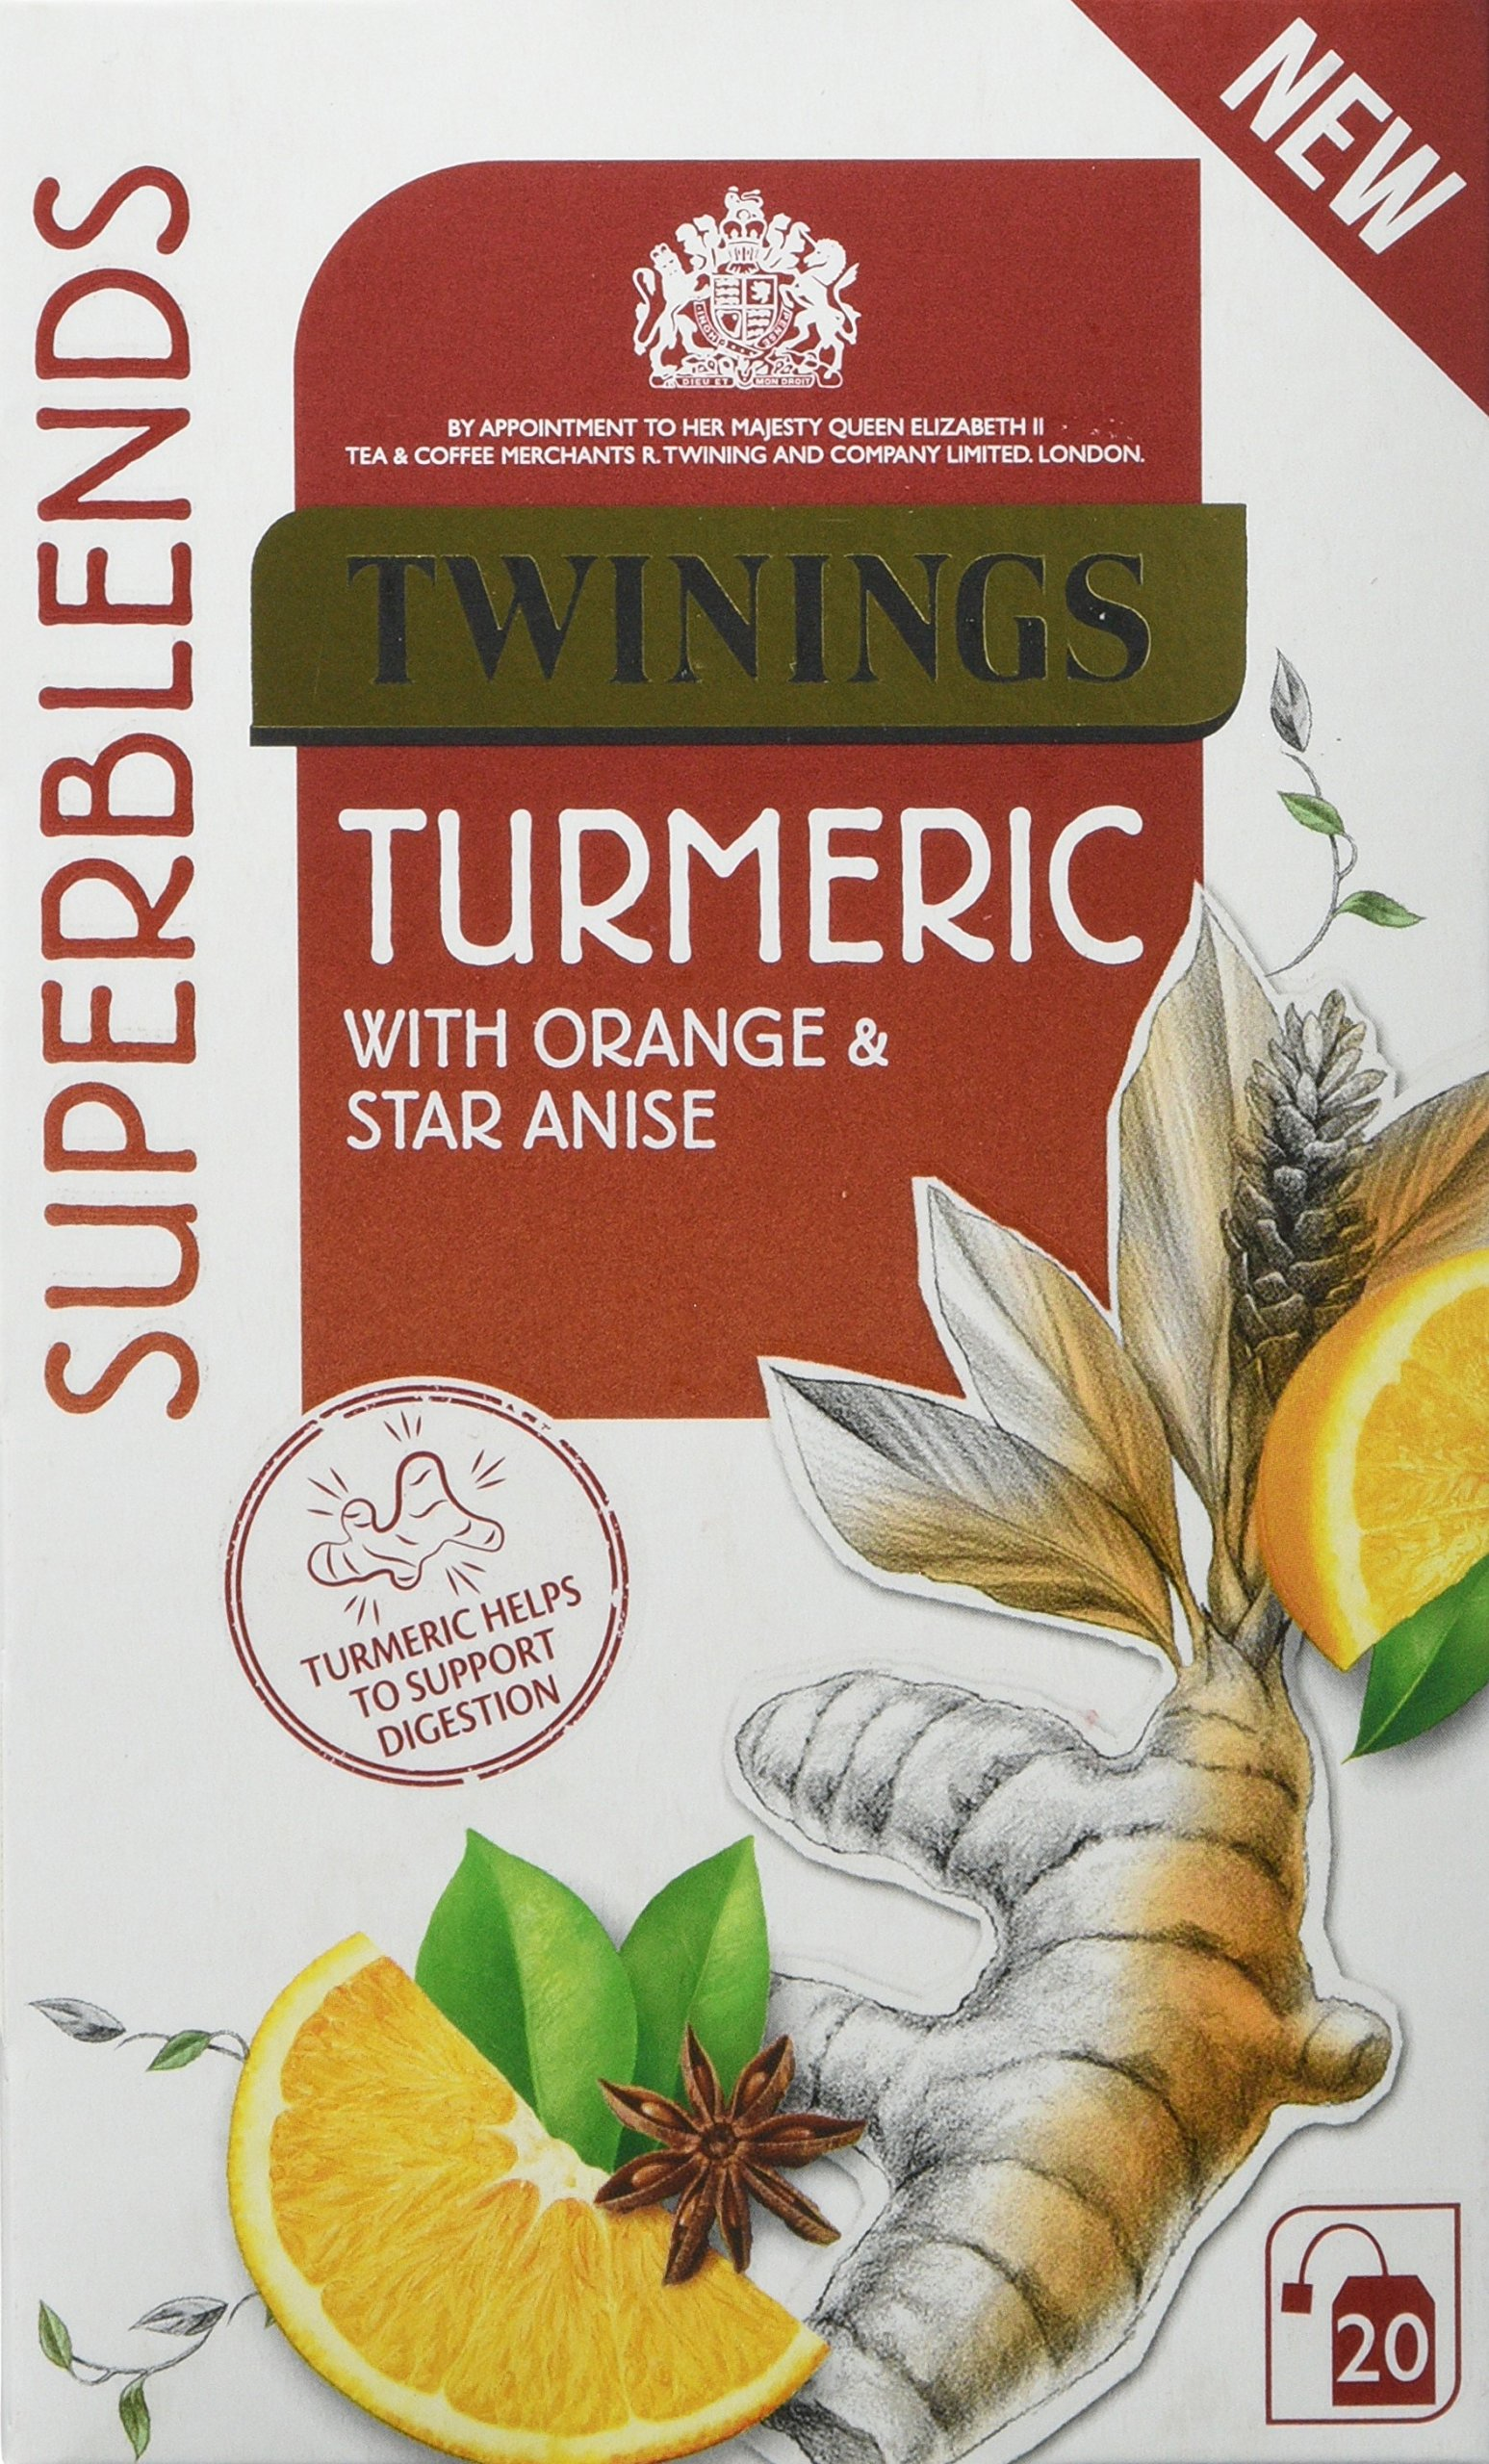 Twinings superblends tea bundle (infusions) (4 packs of 20 bags) (80 bags) (a fruity, spicy tea with aromas of orange, star anise, turmeric) (brews in 3-4 minutes)